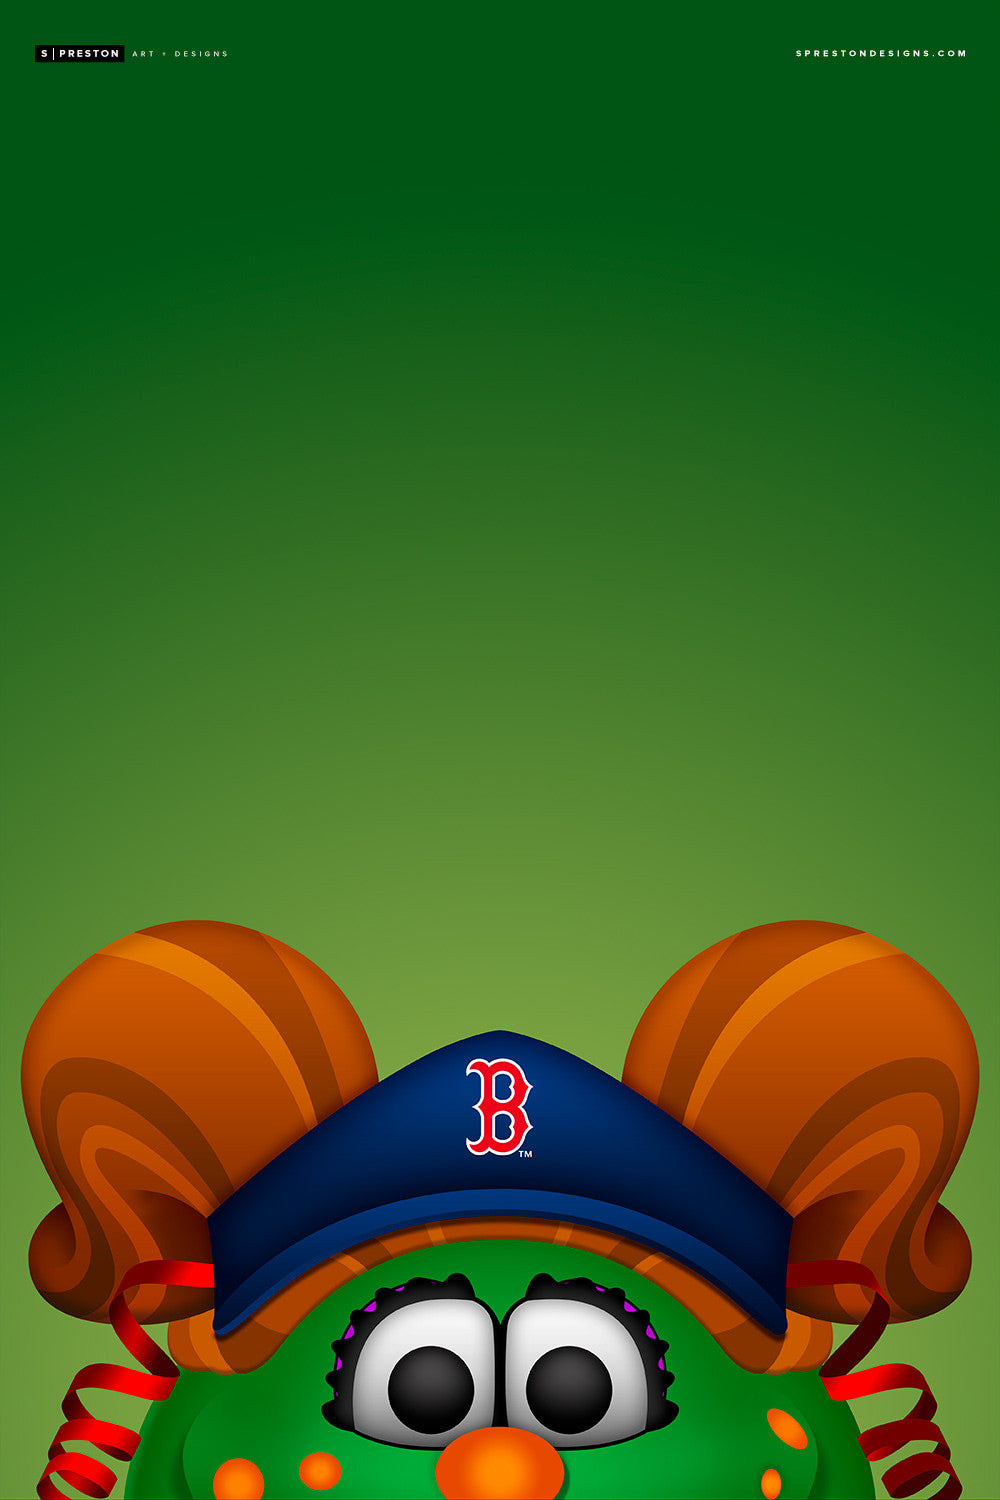 Minimalist Tessie The Green Monster Canvas Canvas - Boston Red Sox - S. Preston Art + Designs